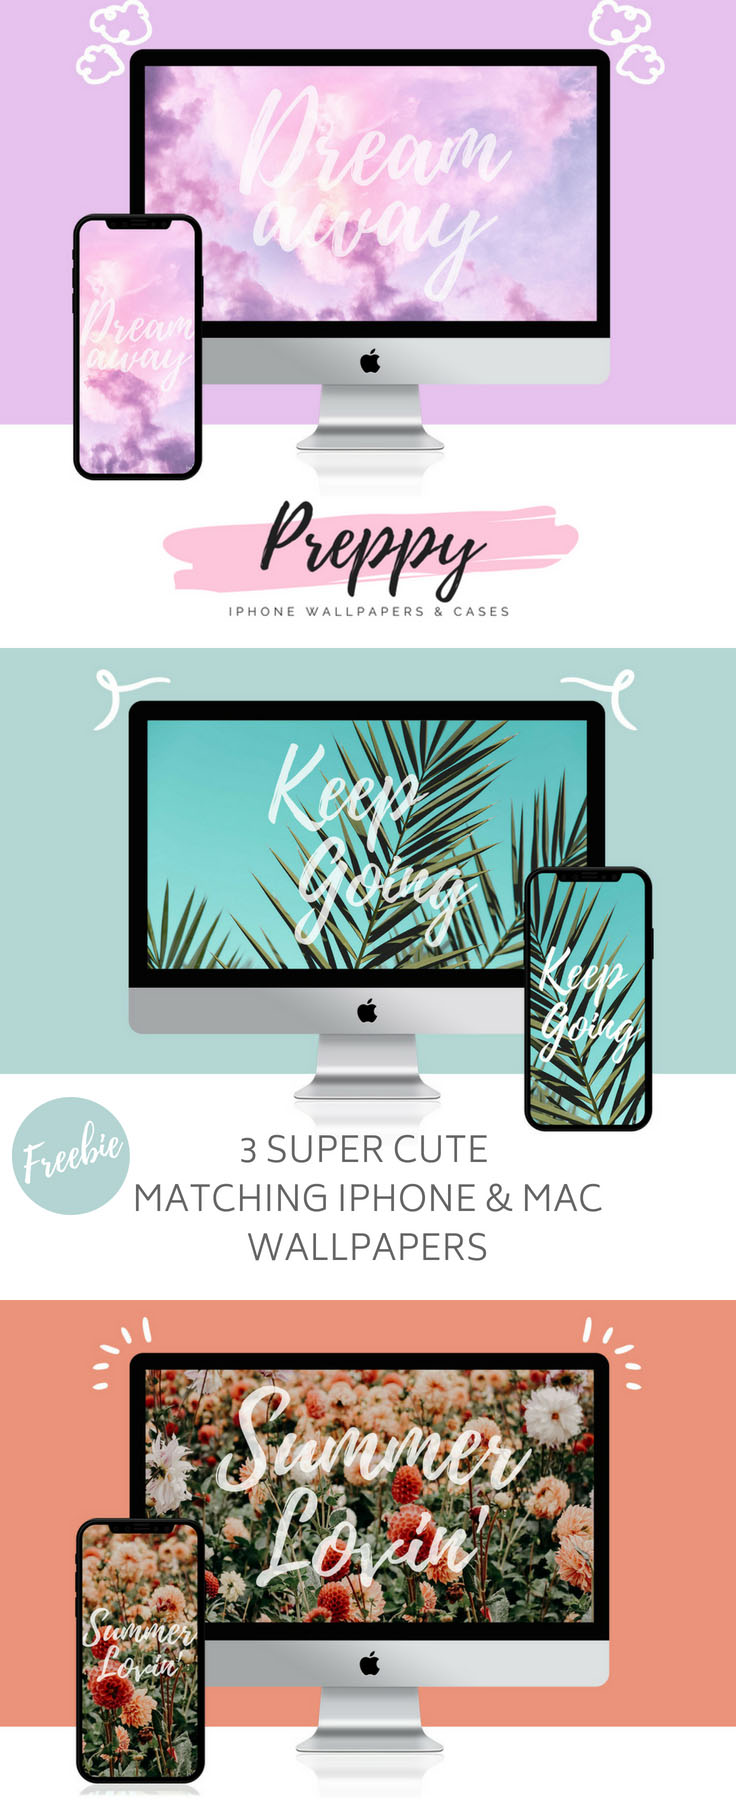 3 Super Cute Matching iPhone + Mac Wallpapers by preppywallpapers.com